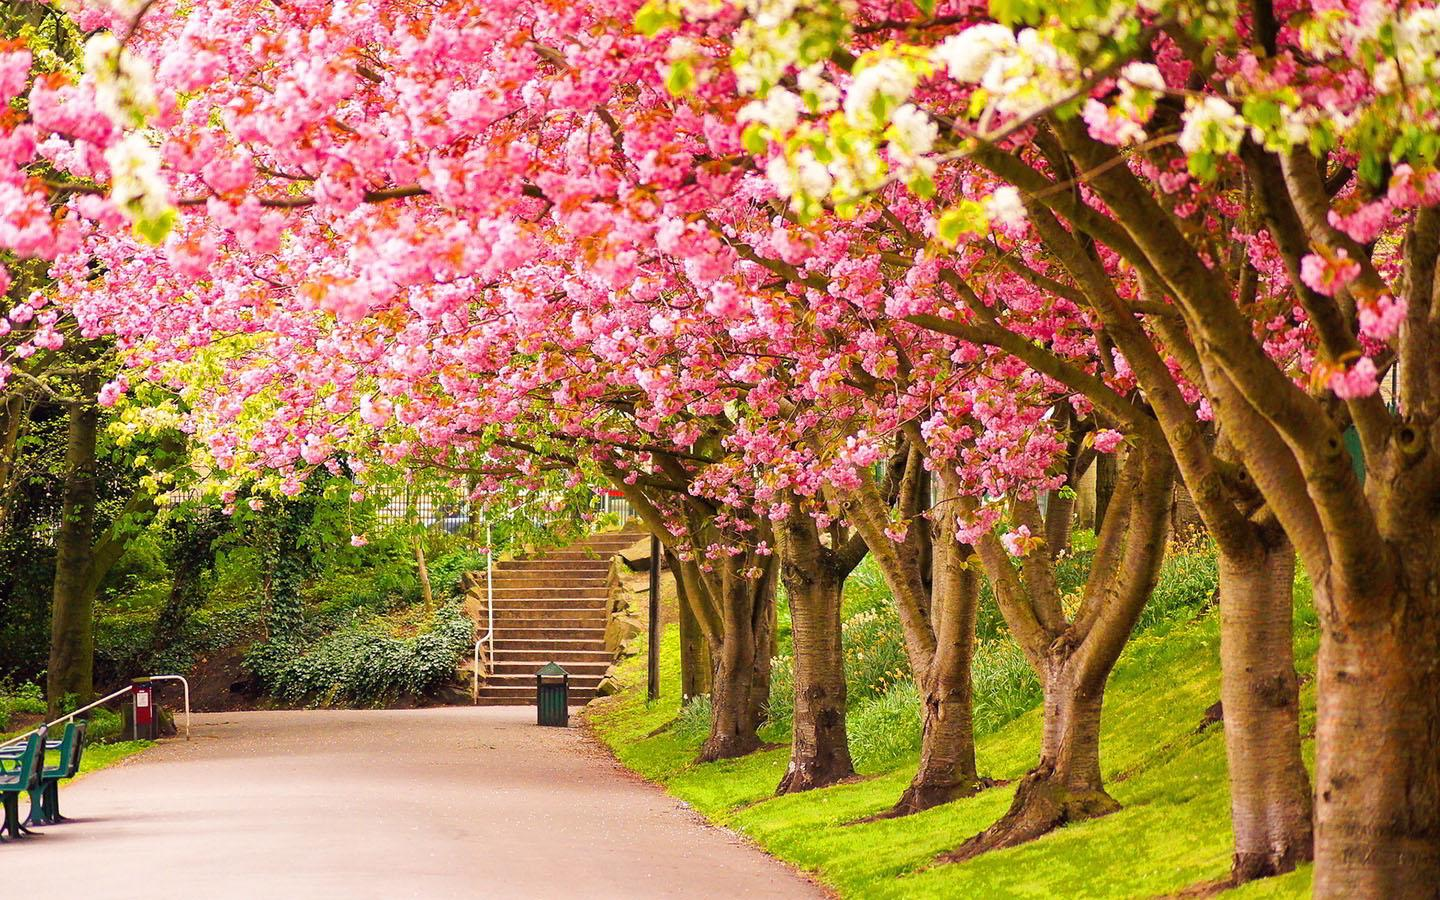 Spring Wallpaper   Android Apps on Google Play 1440x900